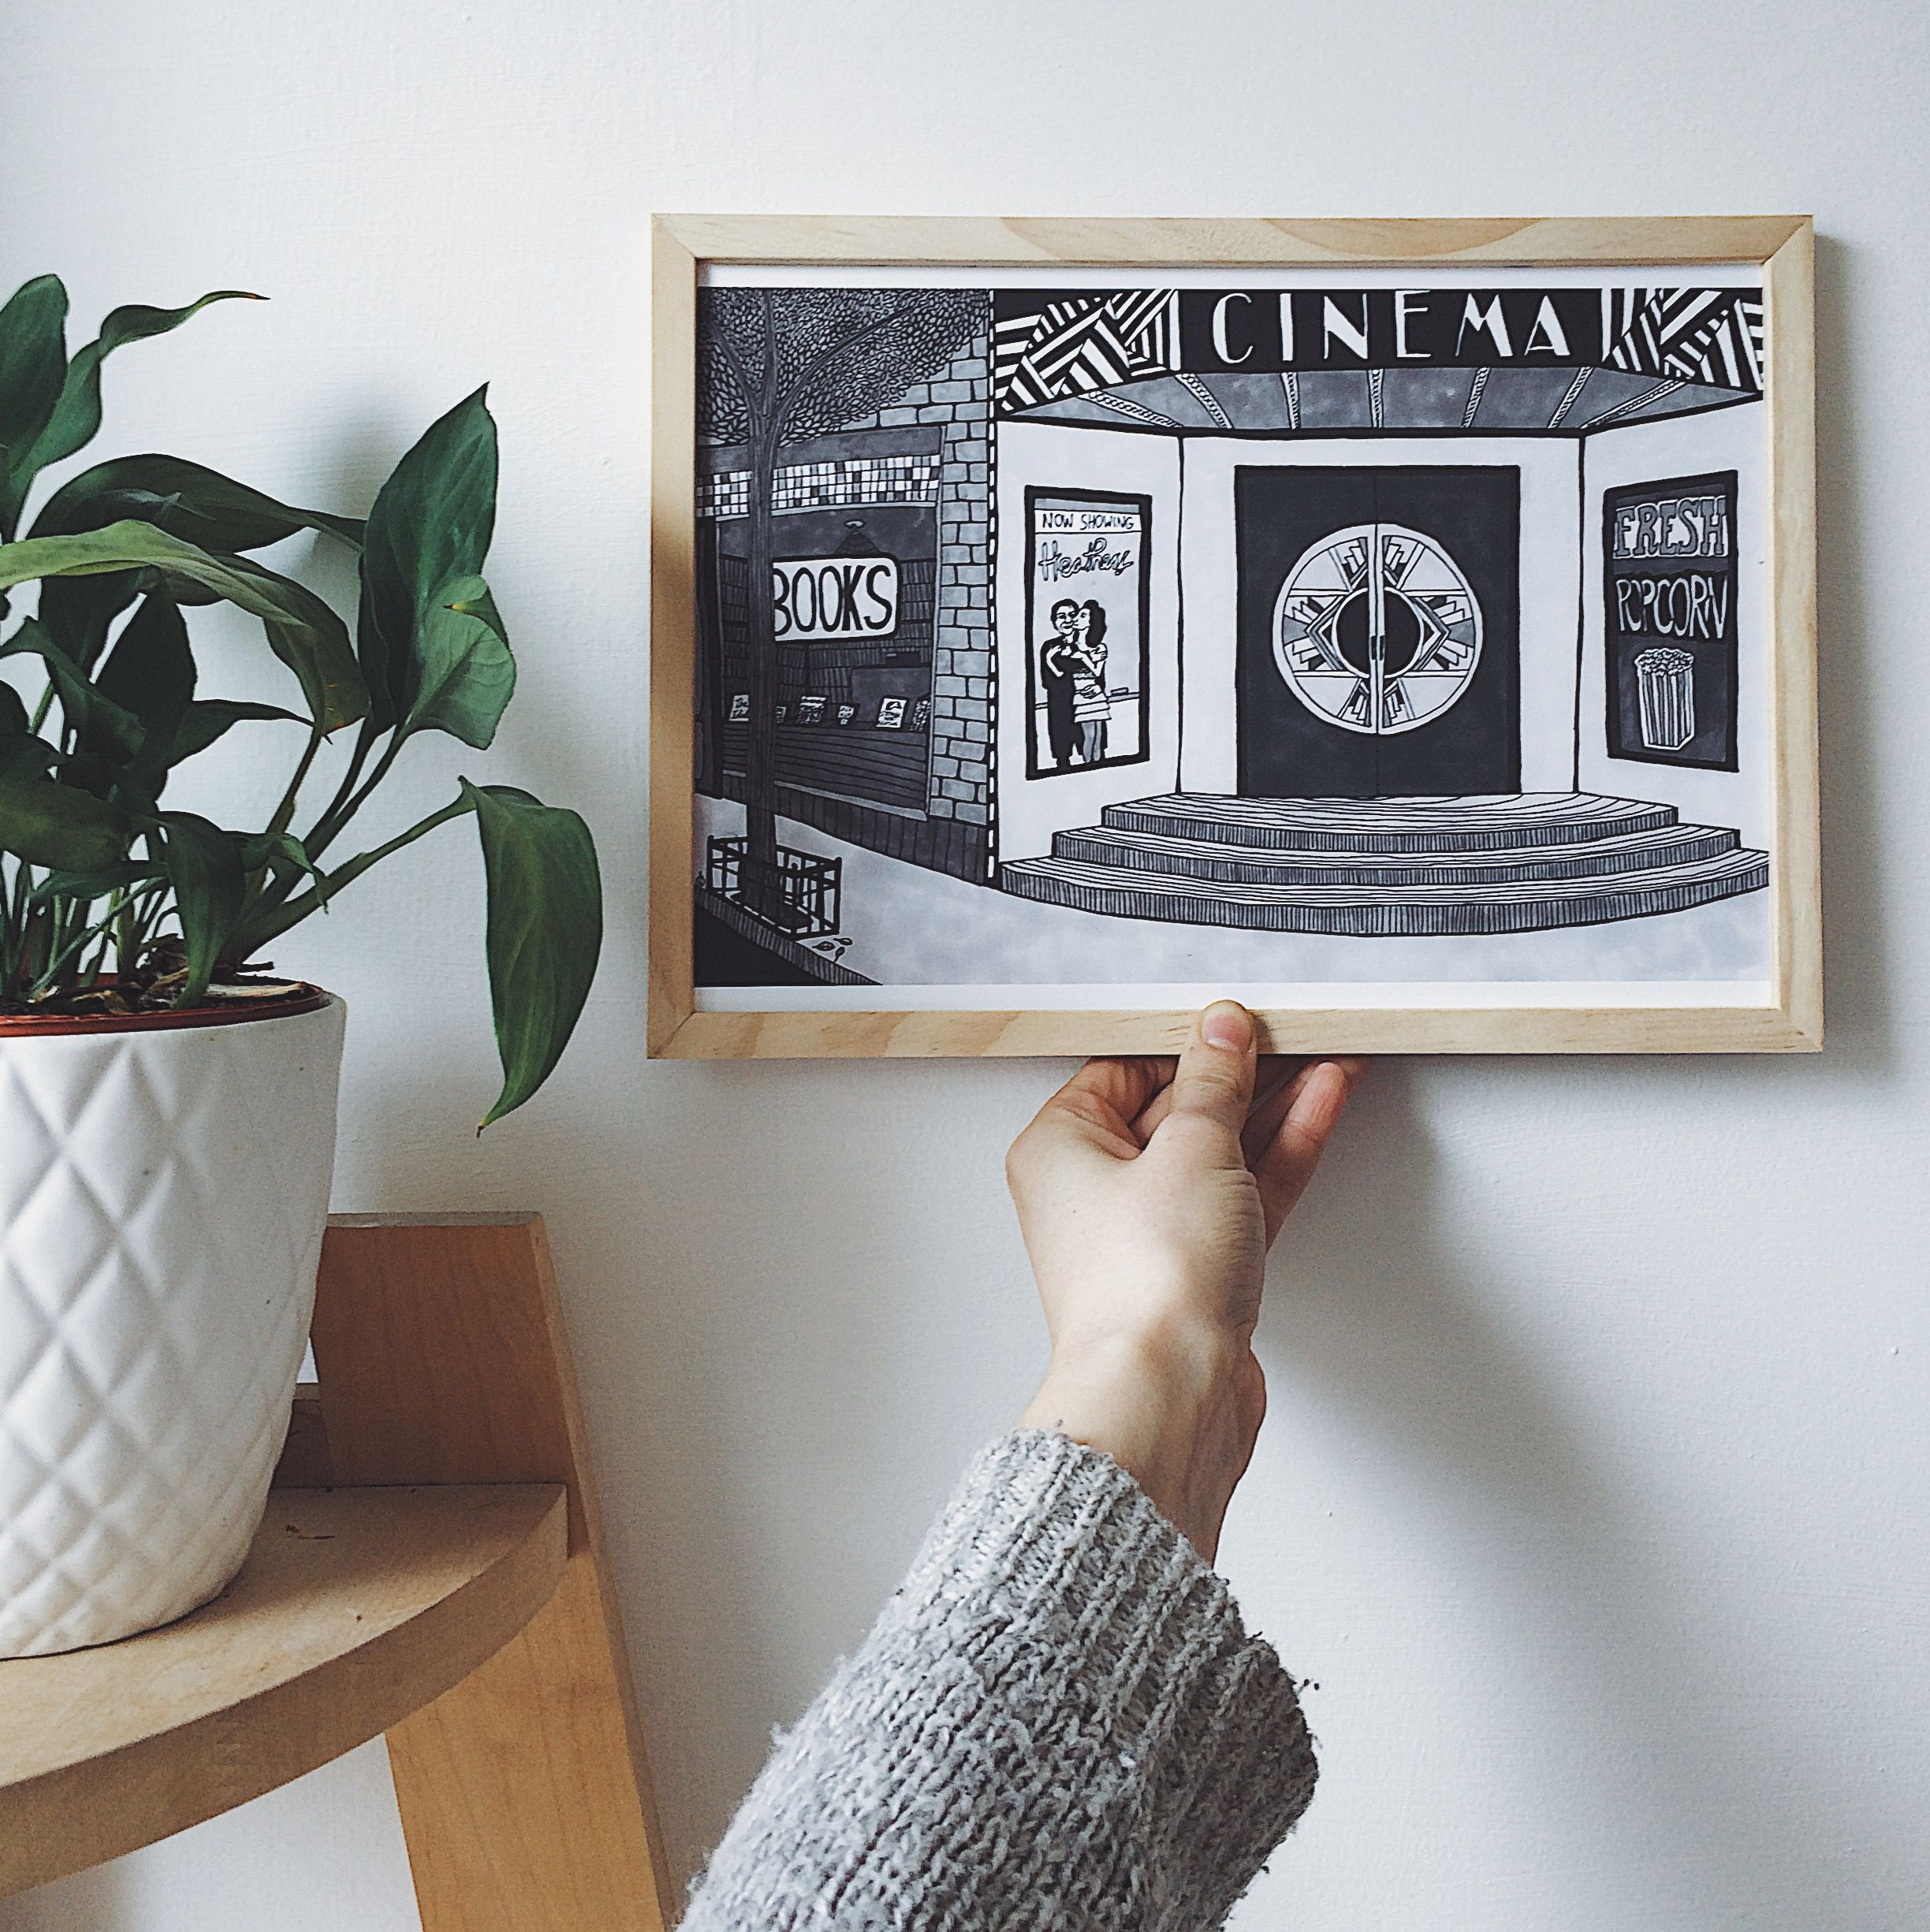 Cinema illustration by carissa tanton available on etsy black and